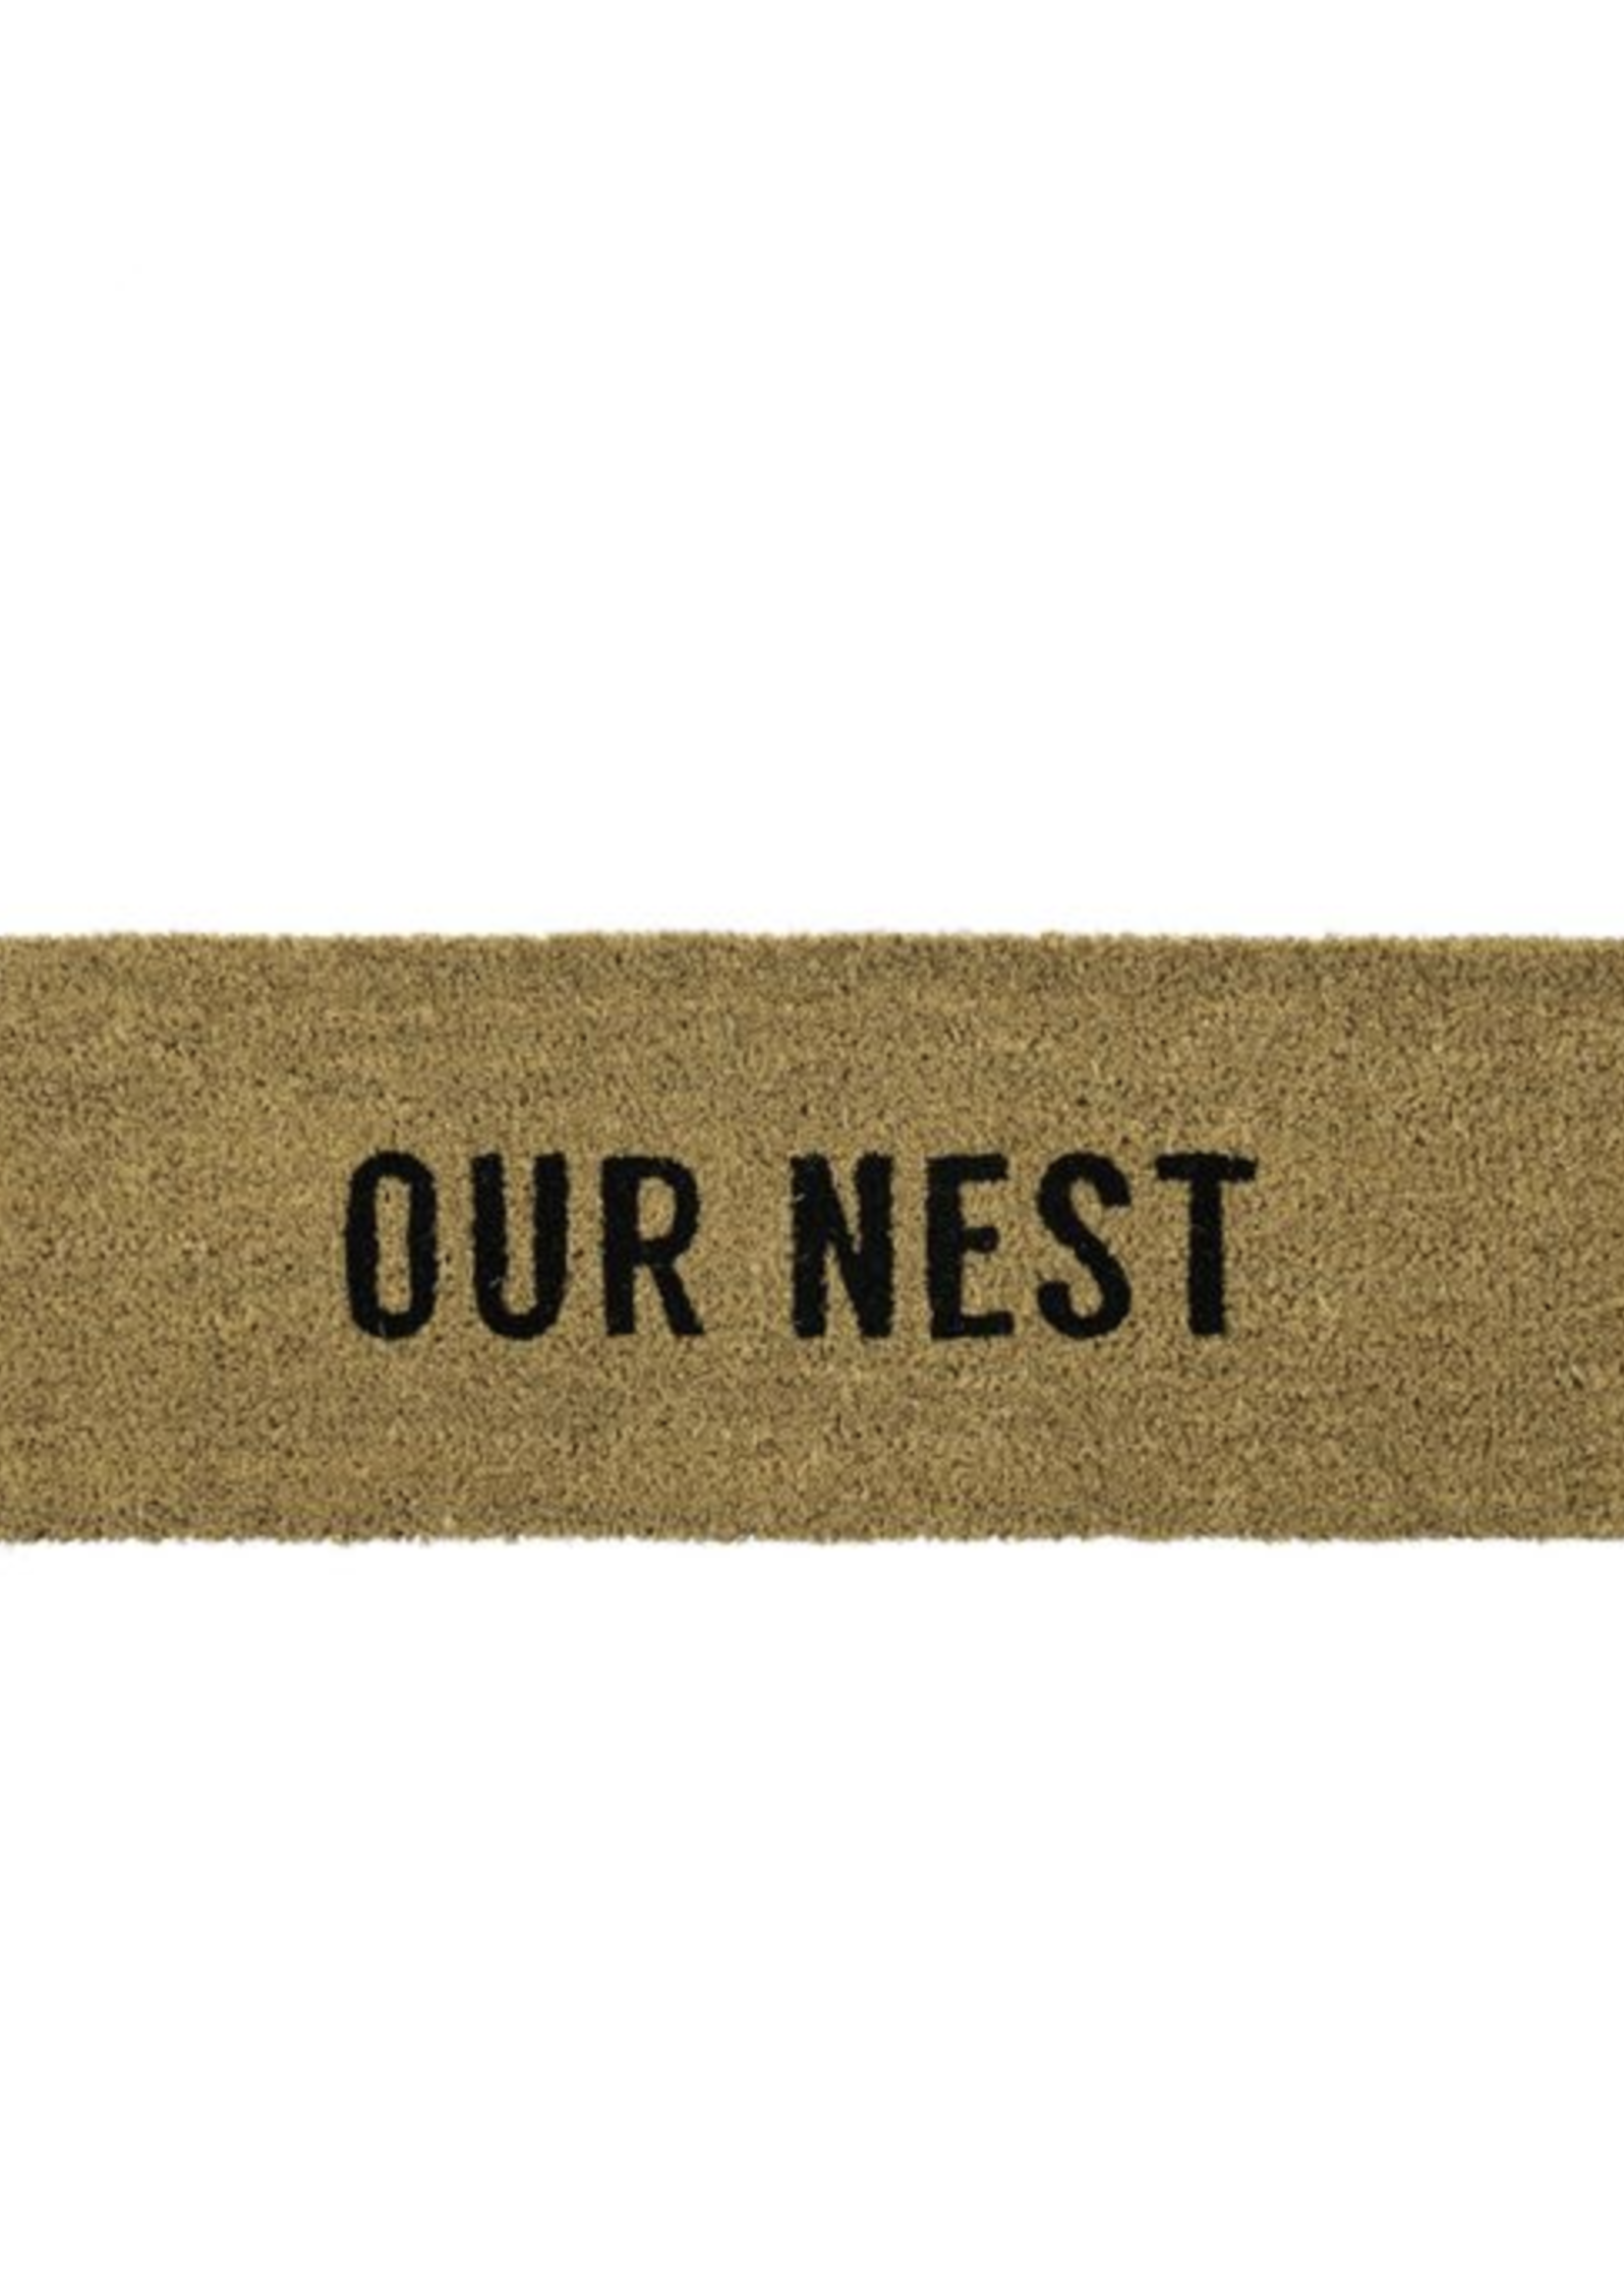 Indaba Trading Co Our Nest Doormat